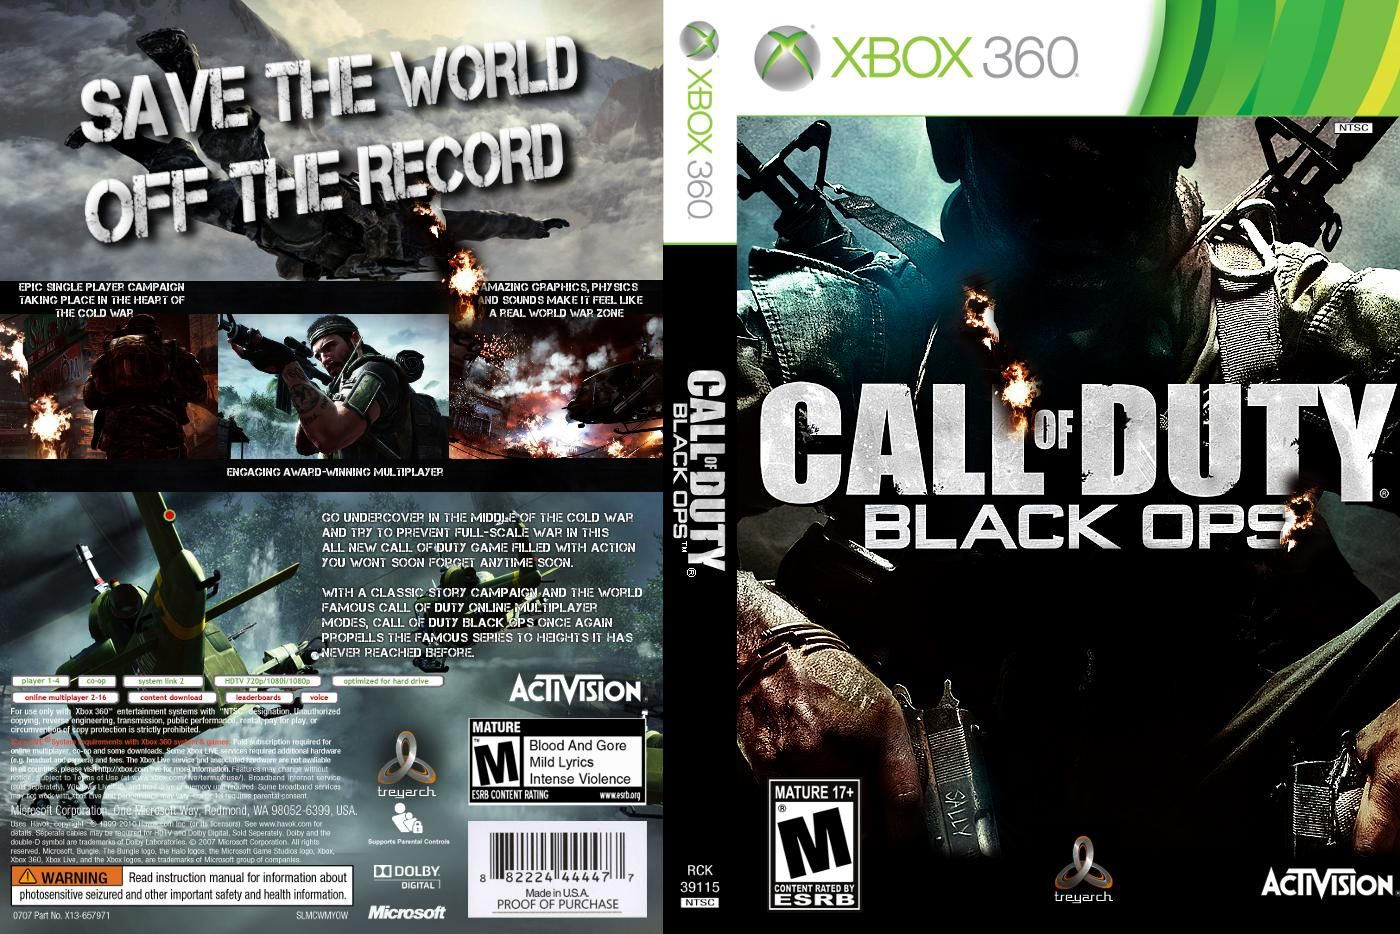 Xbox 360 Call Of Duty Black Ops Call Of Duty Black